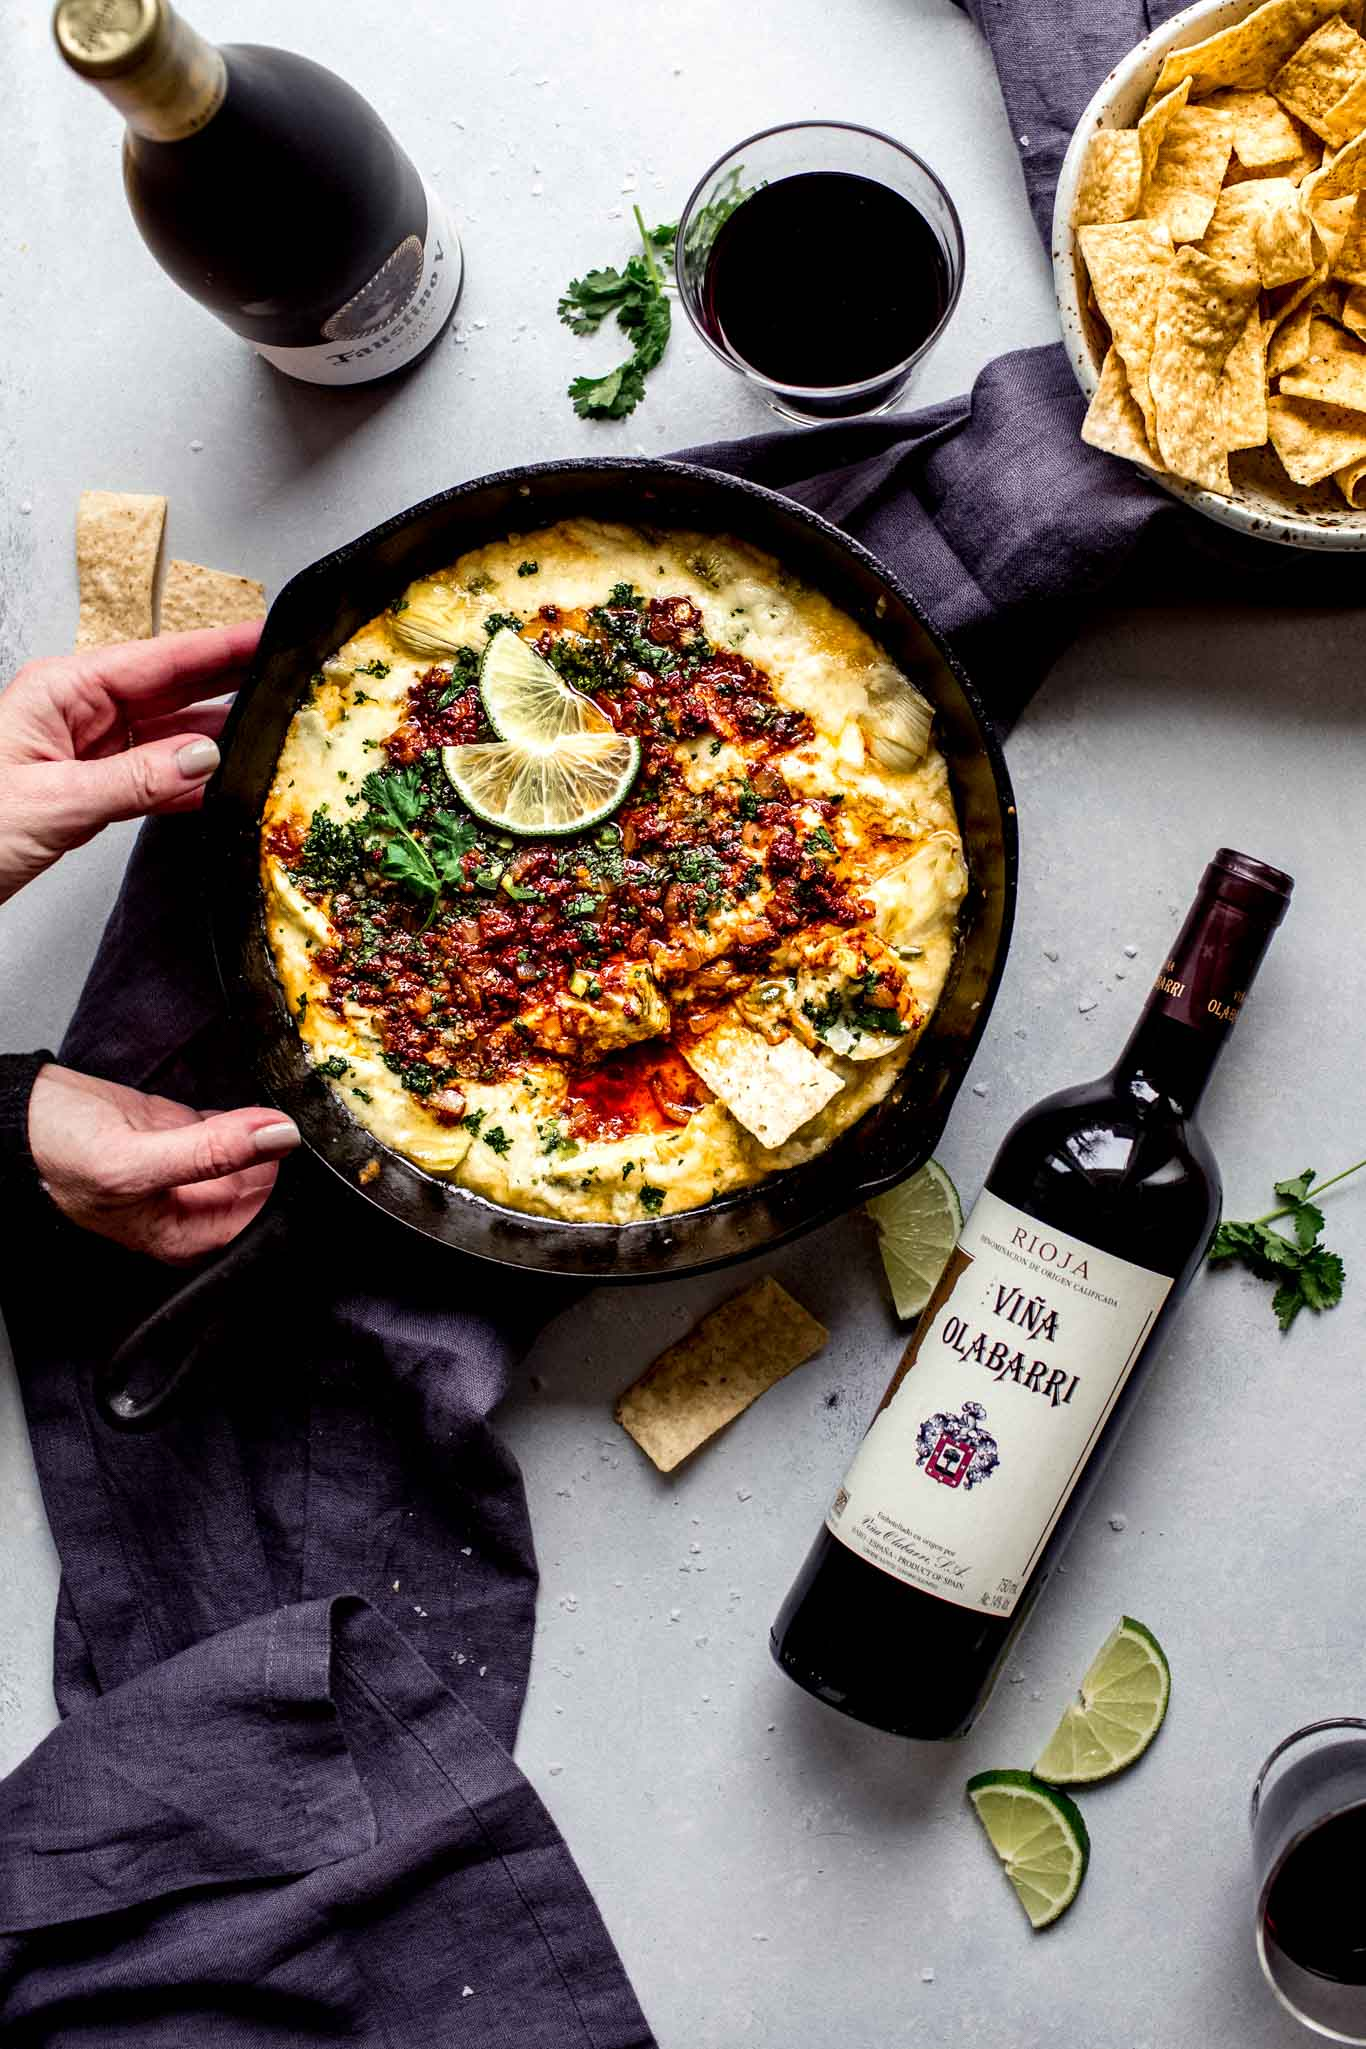 Hands holding skillet of queso blanco next to two bottles of wine.